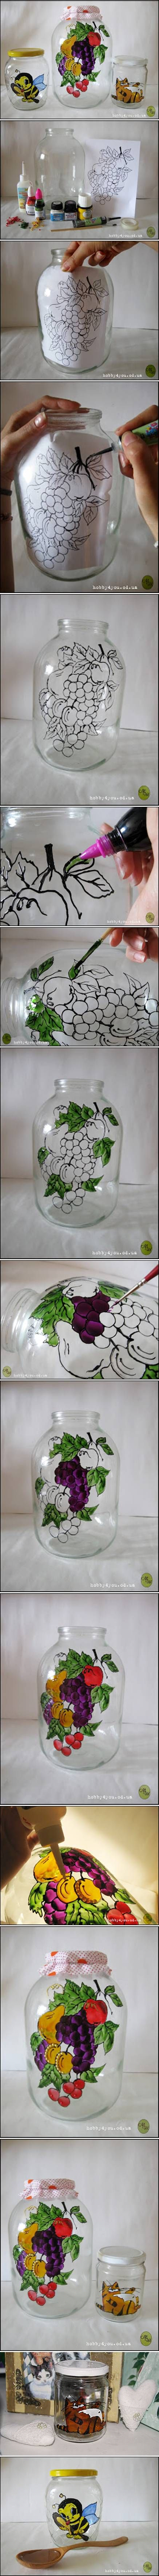 DIY Pot en verre Peinture décoration | iCreativeIdeas.com Follow Us on Facebook --> https://www.facebook.com/icreativeideas